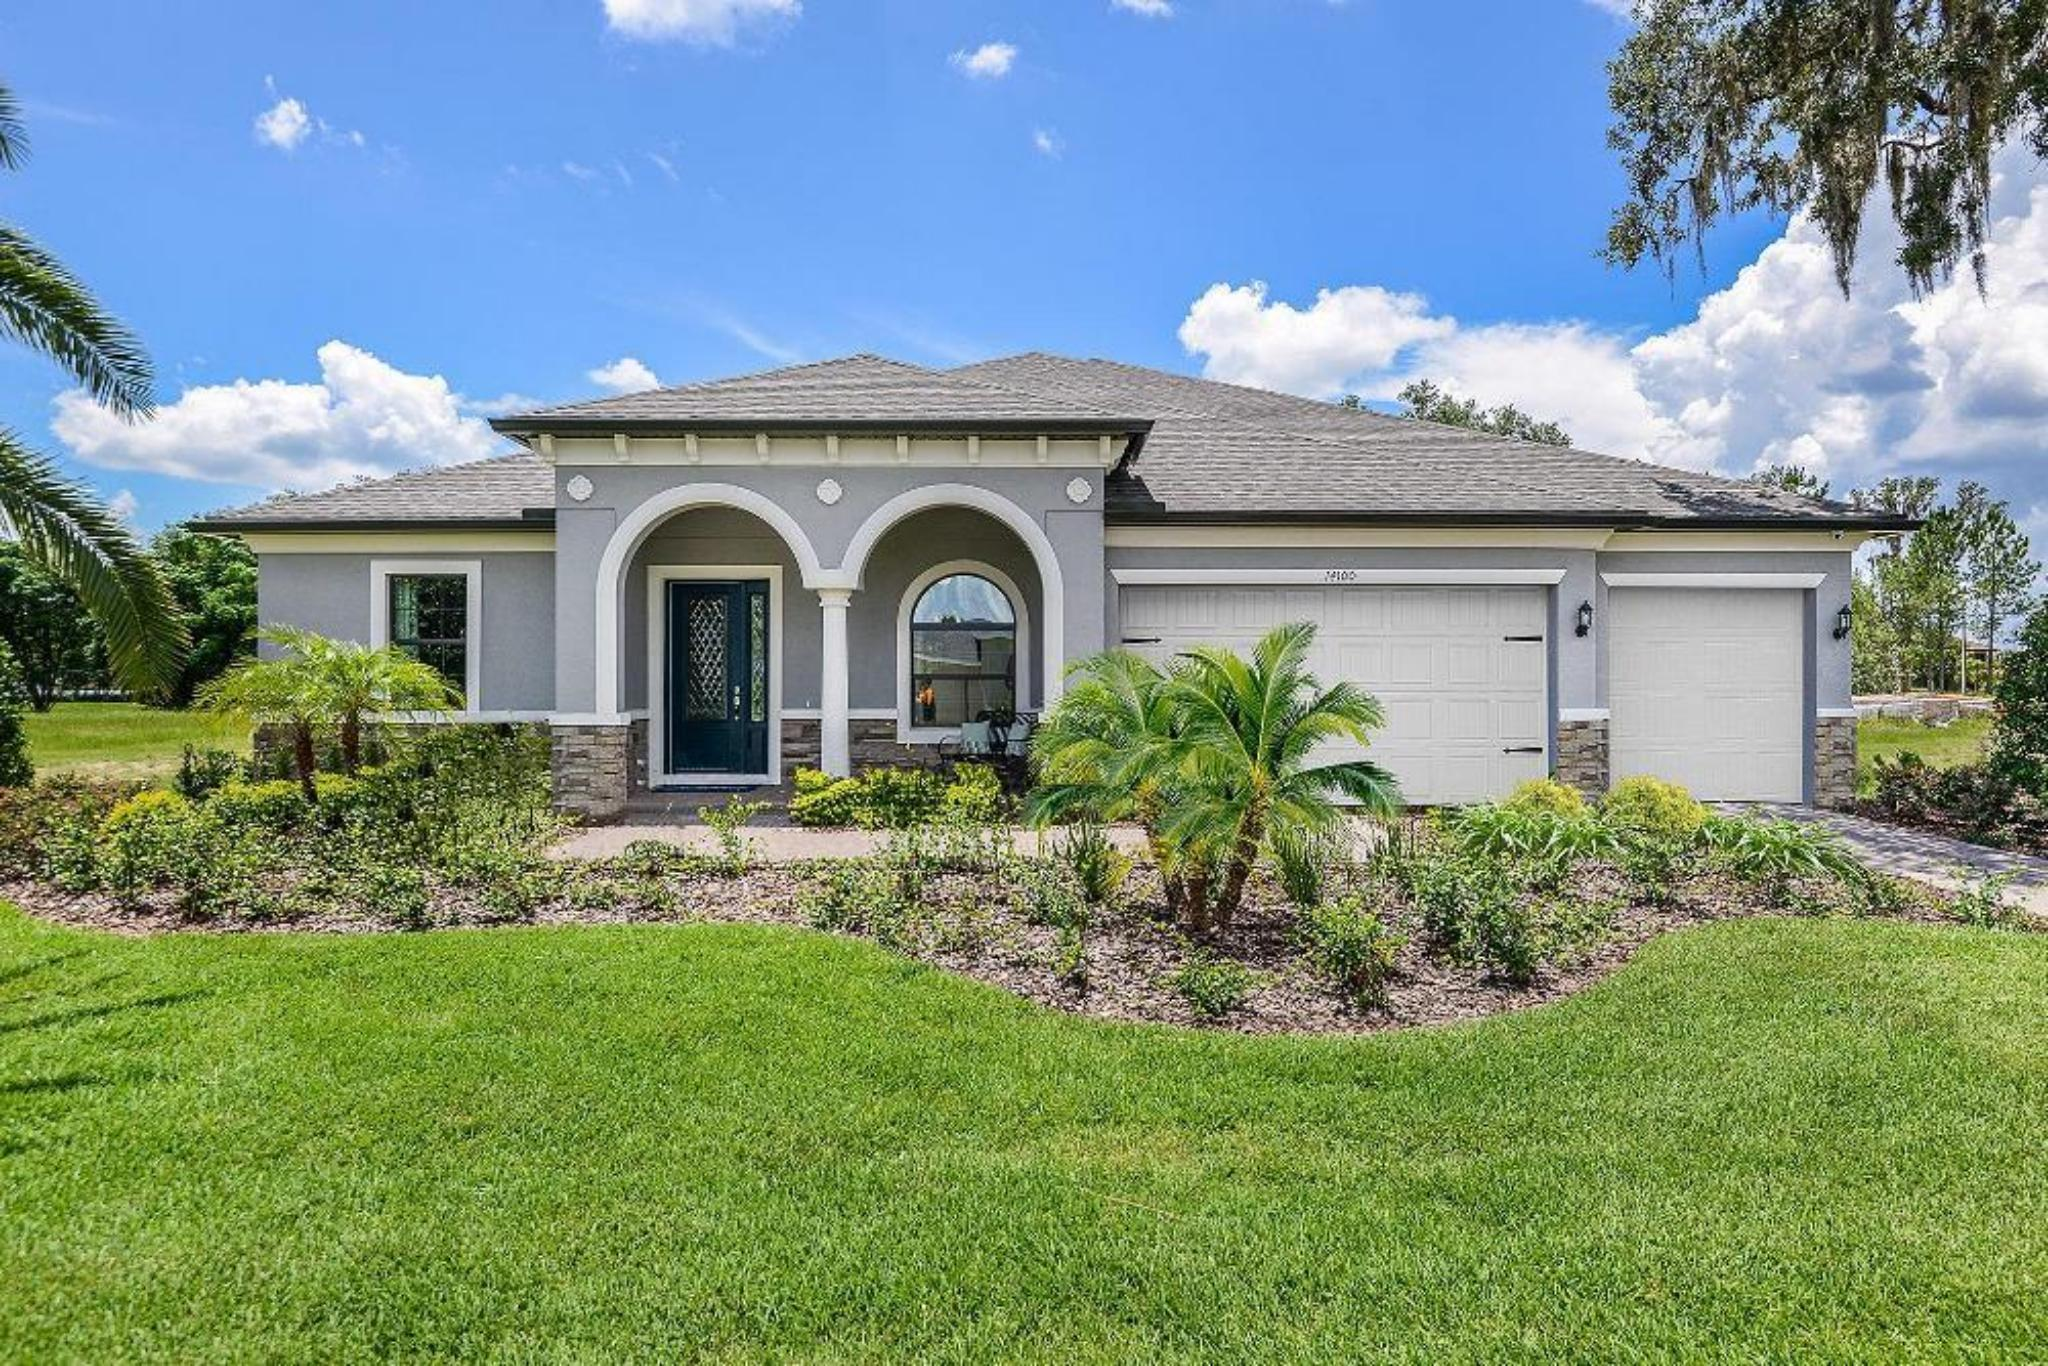 Single Family for Sale at Carlingford 13017 Weatherstone Dr. Spring Hill, Florida 34609 United States